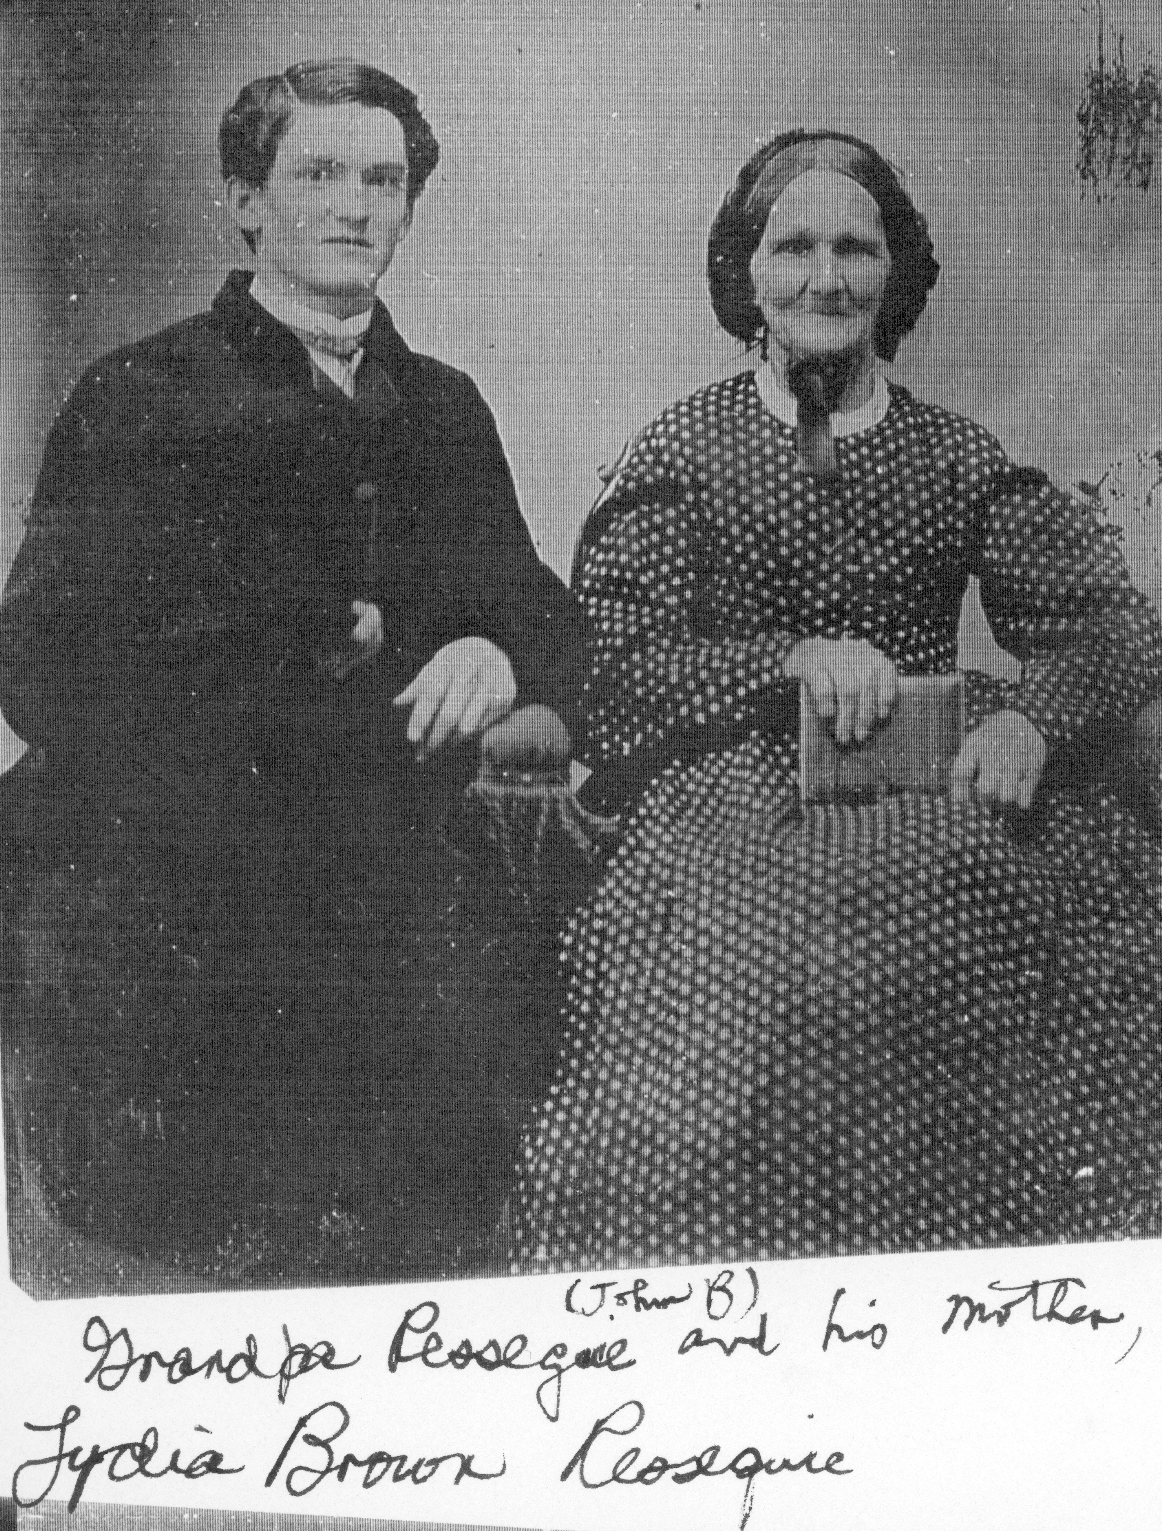 John B Ressiguie grandpa with his mother Lydia B Ressiguie